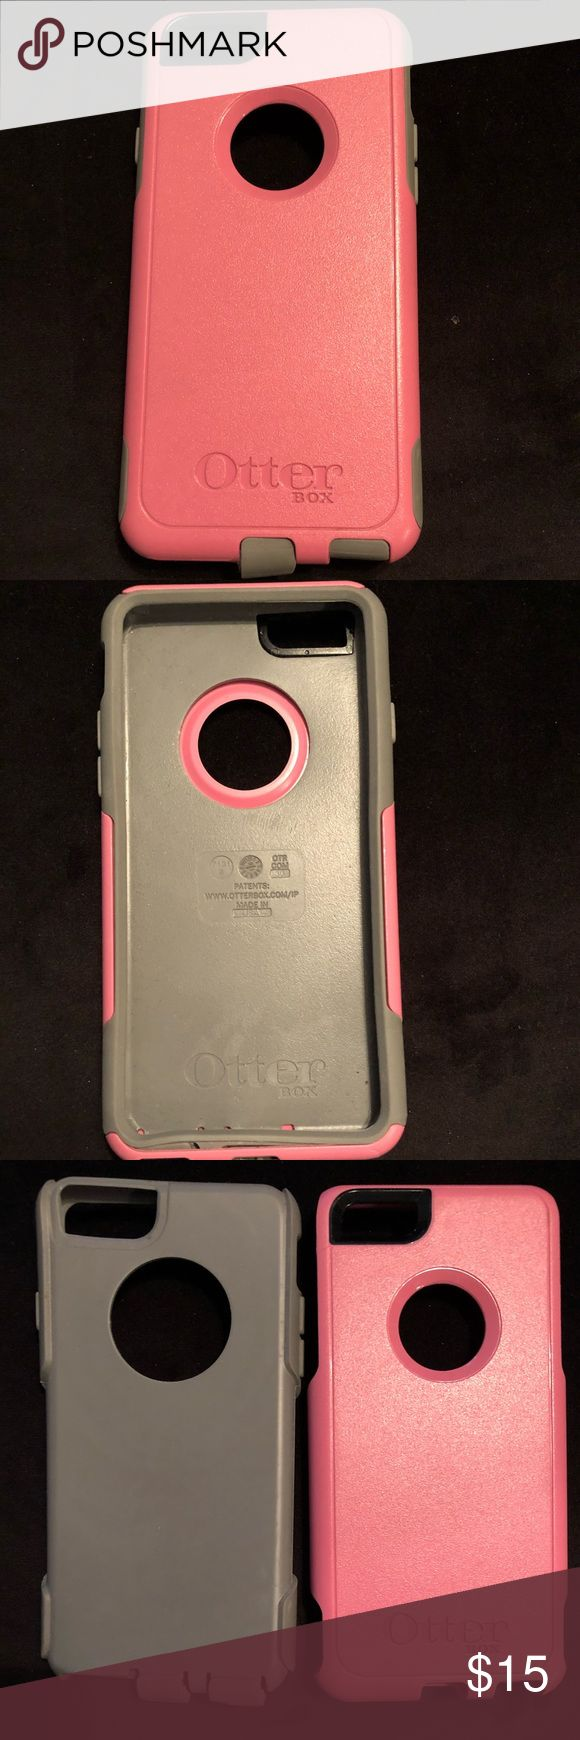 iPhone 6/6s Otter Box case Pink and grey Otter Box case for an iPhone 6/6s. Inner rubber case is grey and hard outter plastic shell is pink. OtterBox Accessories Phone Cases